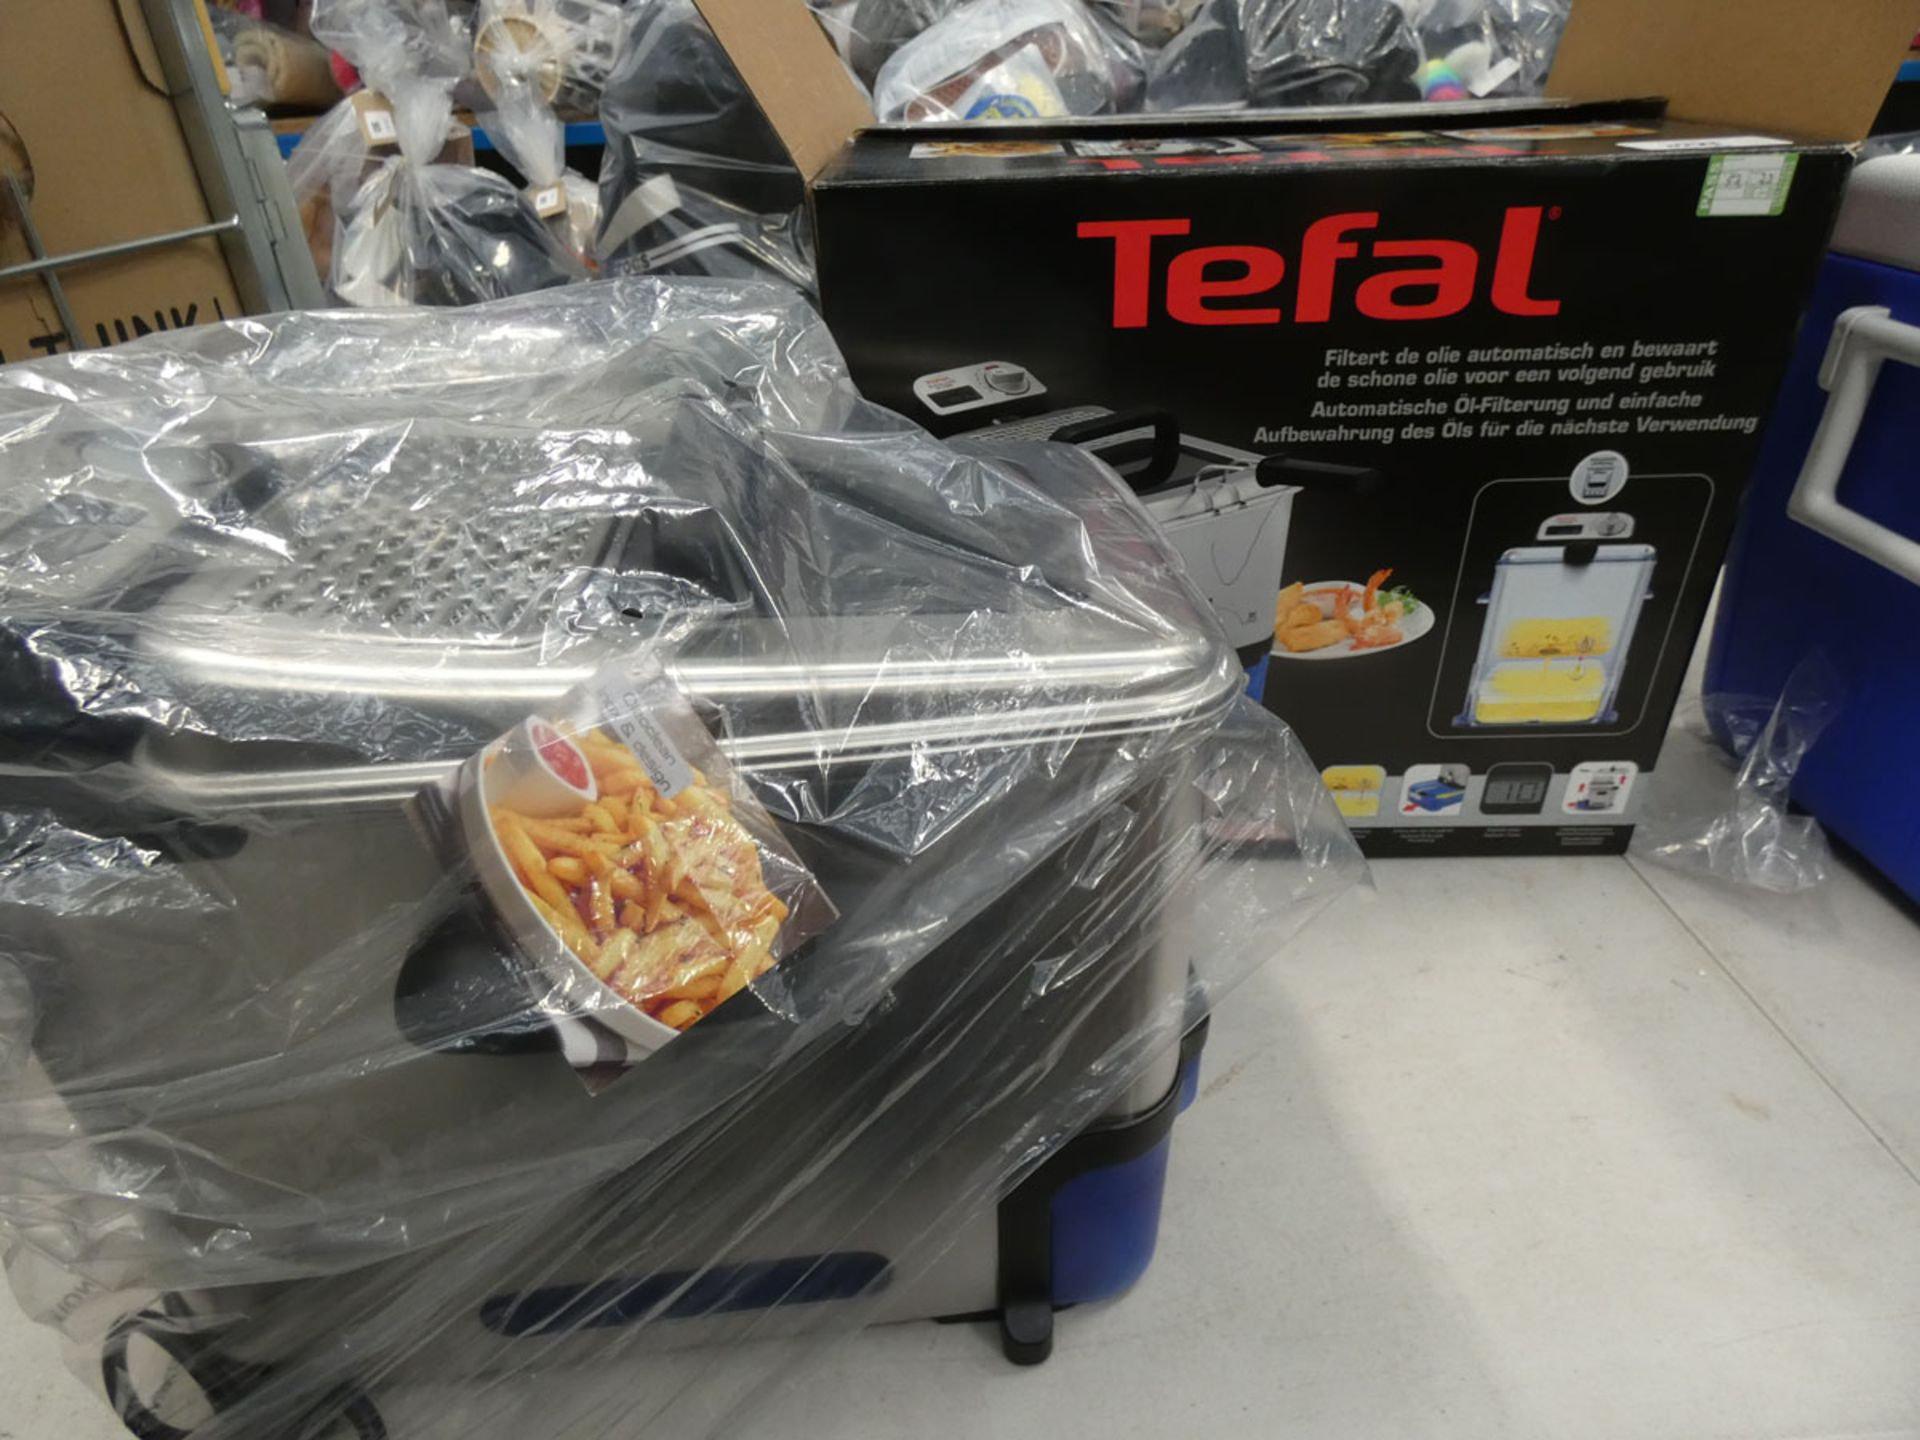 3071 - Boxed Tefal filter fryer